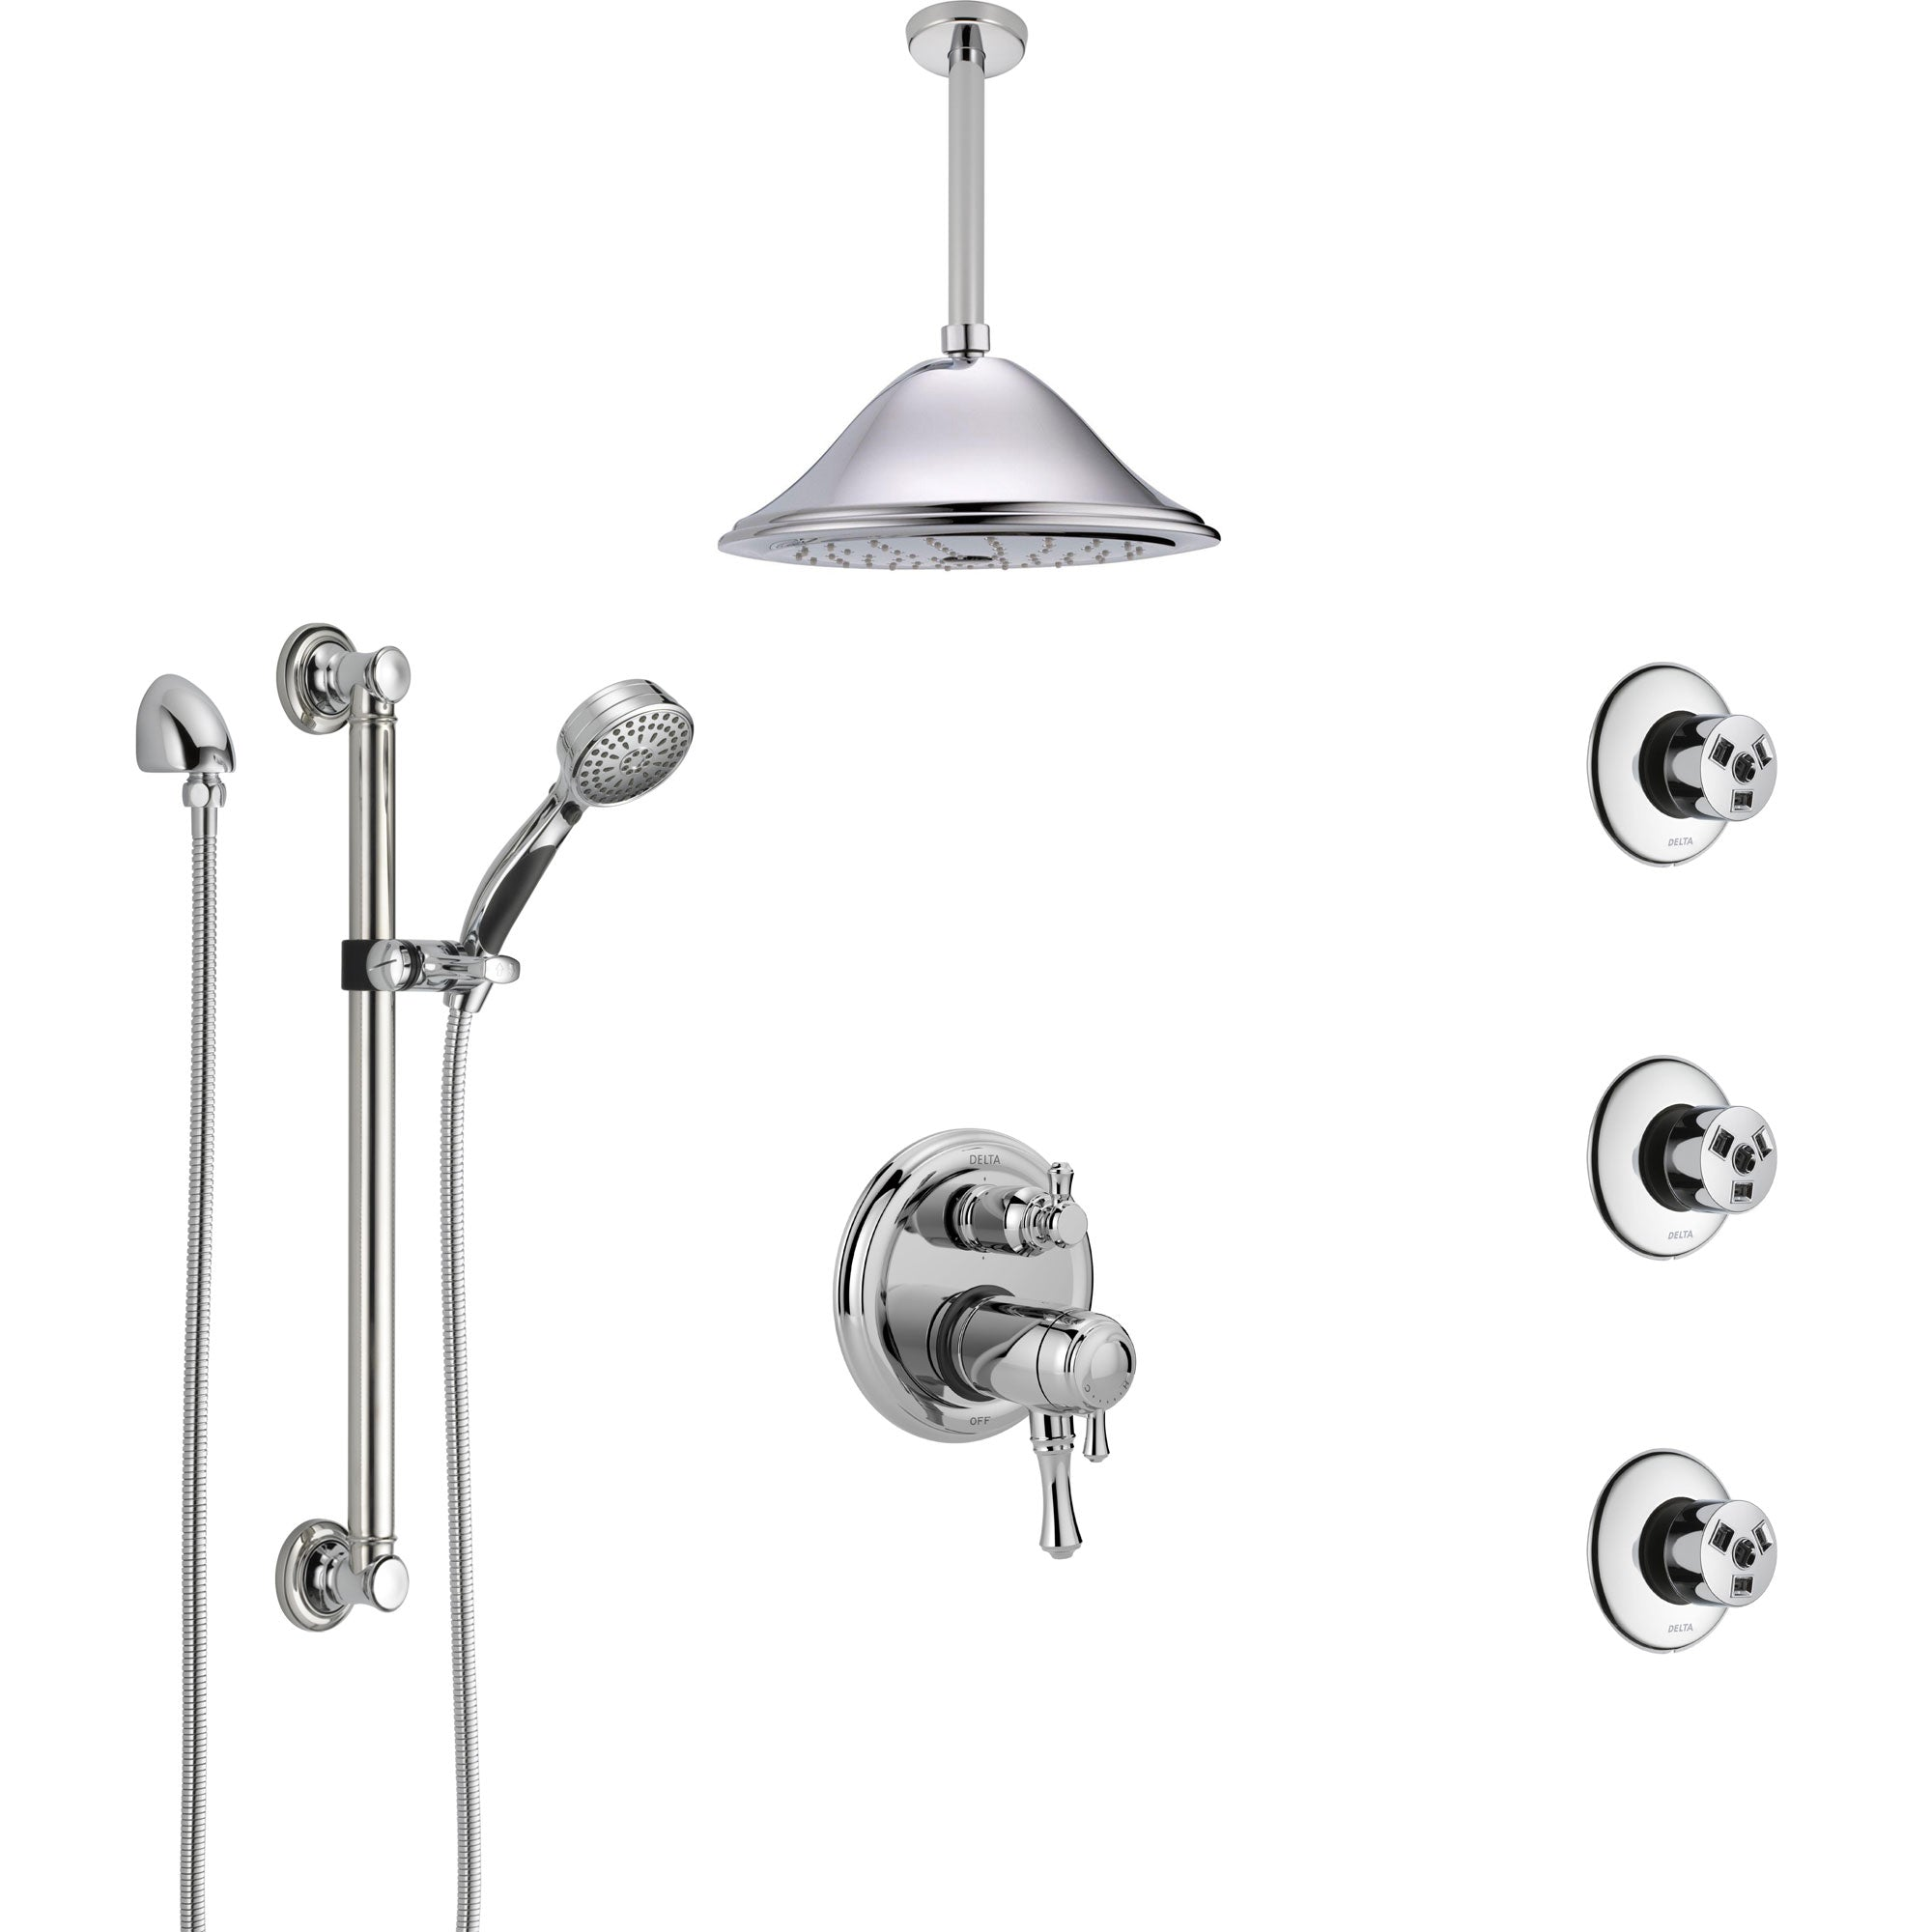 Delta Cassidy Chrome Dual Thermostatic Control Integrated Diverter Shower System, Ceiling Showerhead, 3 Body Sprays, and Grab Bar Hand Spray SS27T9974